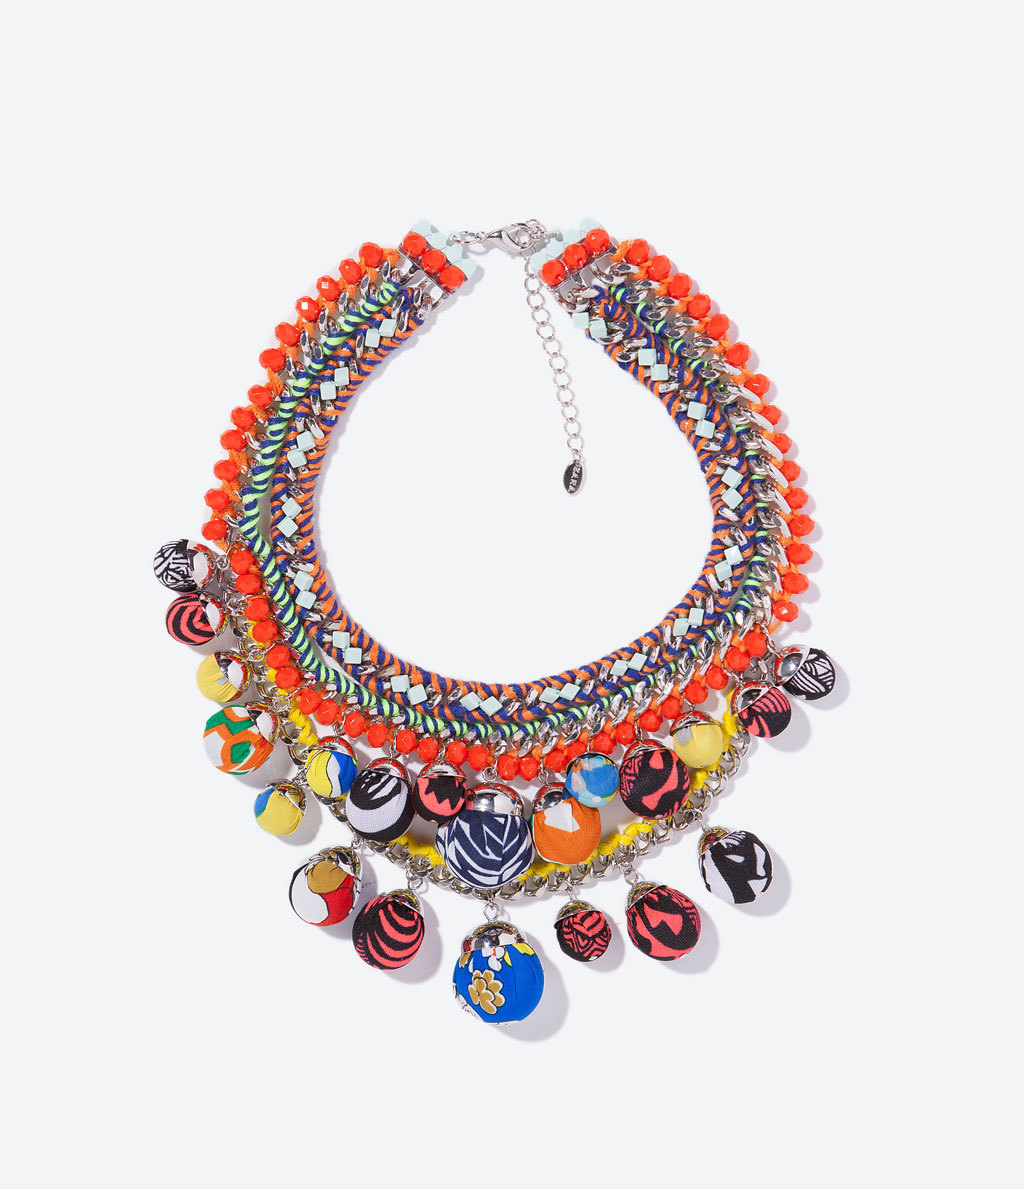 Chain And Beads Necklace - occasions: casual, evening, occasion, holiday, creative work; predominant colour: multicoloured; length: mid; size: large/oversized; material: chain/metal; finish: plain; embellishment: beading; style: bib/statement; season: s/s 2014; multicoloured: multicoloured